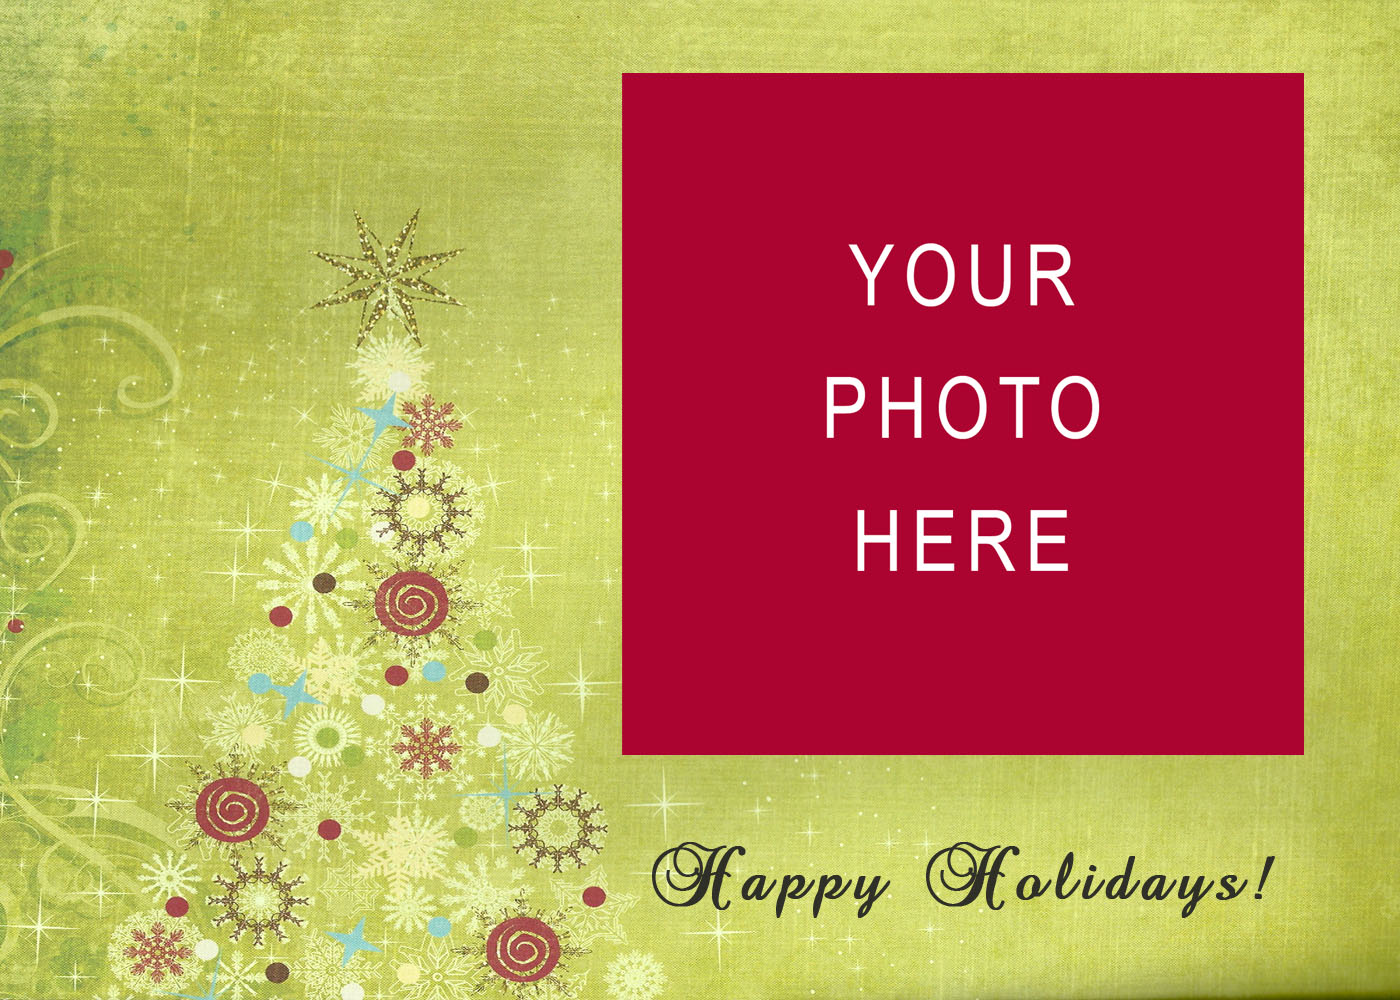 Oh joy photography free holiday card templates columbus ohio